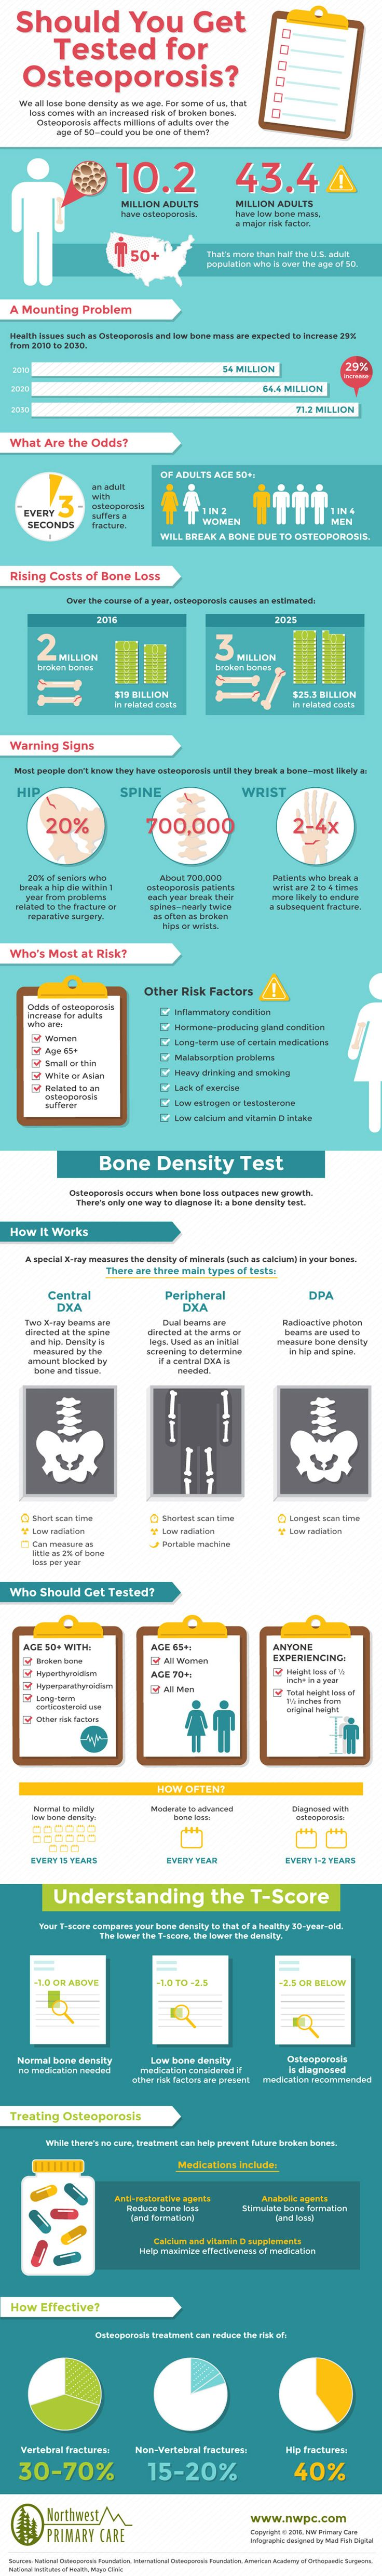 Should You Take a Bone Density Test to Diagnose Osteoporosis Infographic #health #medical #aging